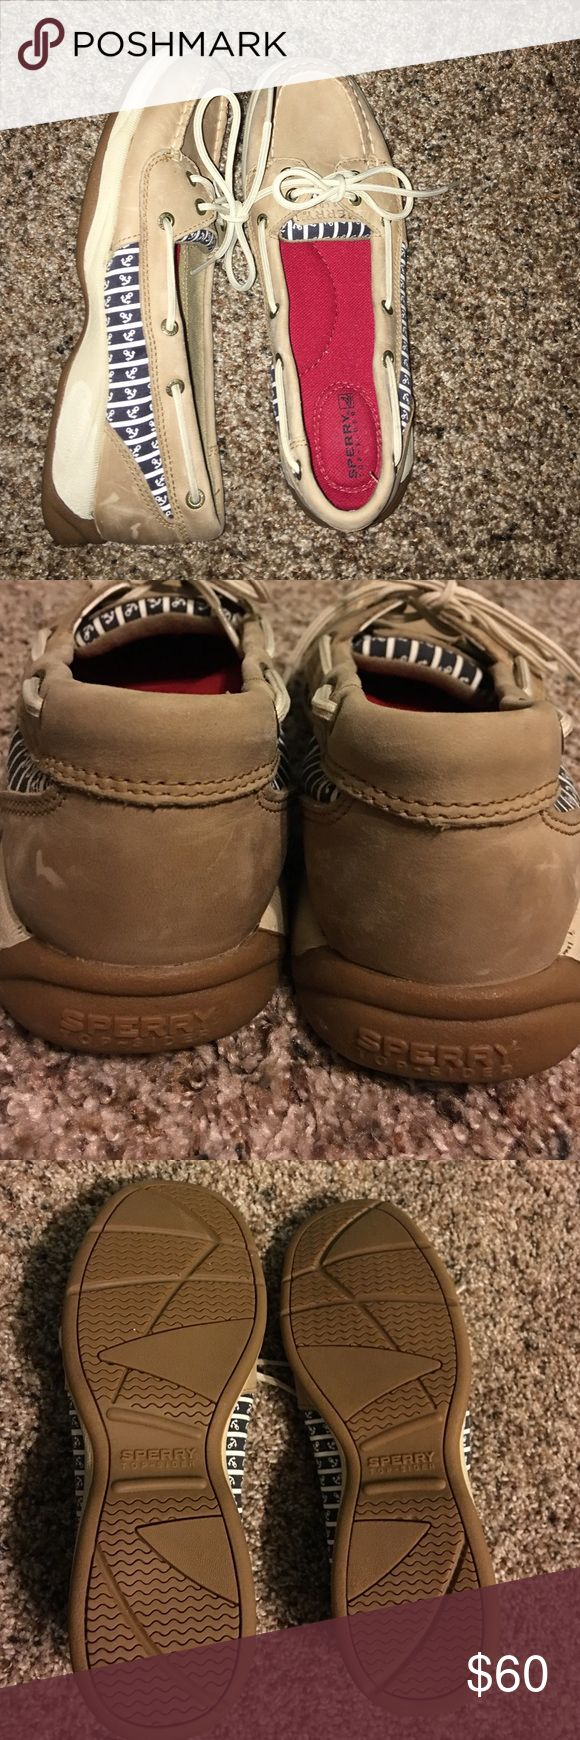 Sperry Top Sider Laguna Boat Shoe New without box, only worn around the house. Super cute anchor pattern on sides! Sperry Top-Sider Shoes Flats & Loafers